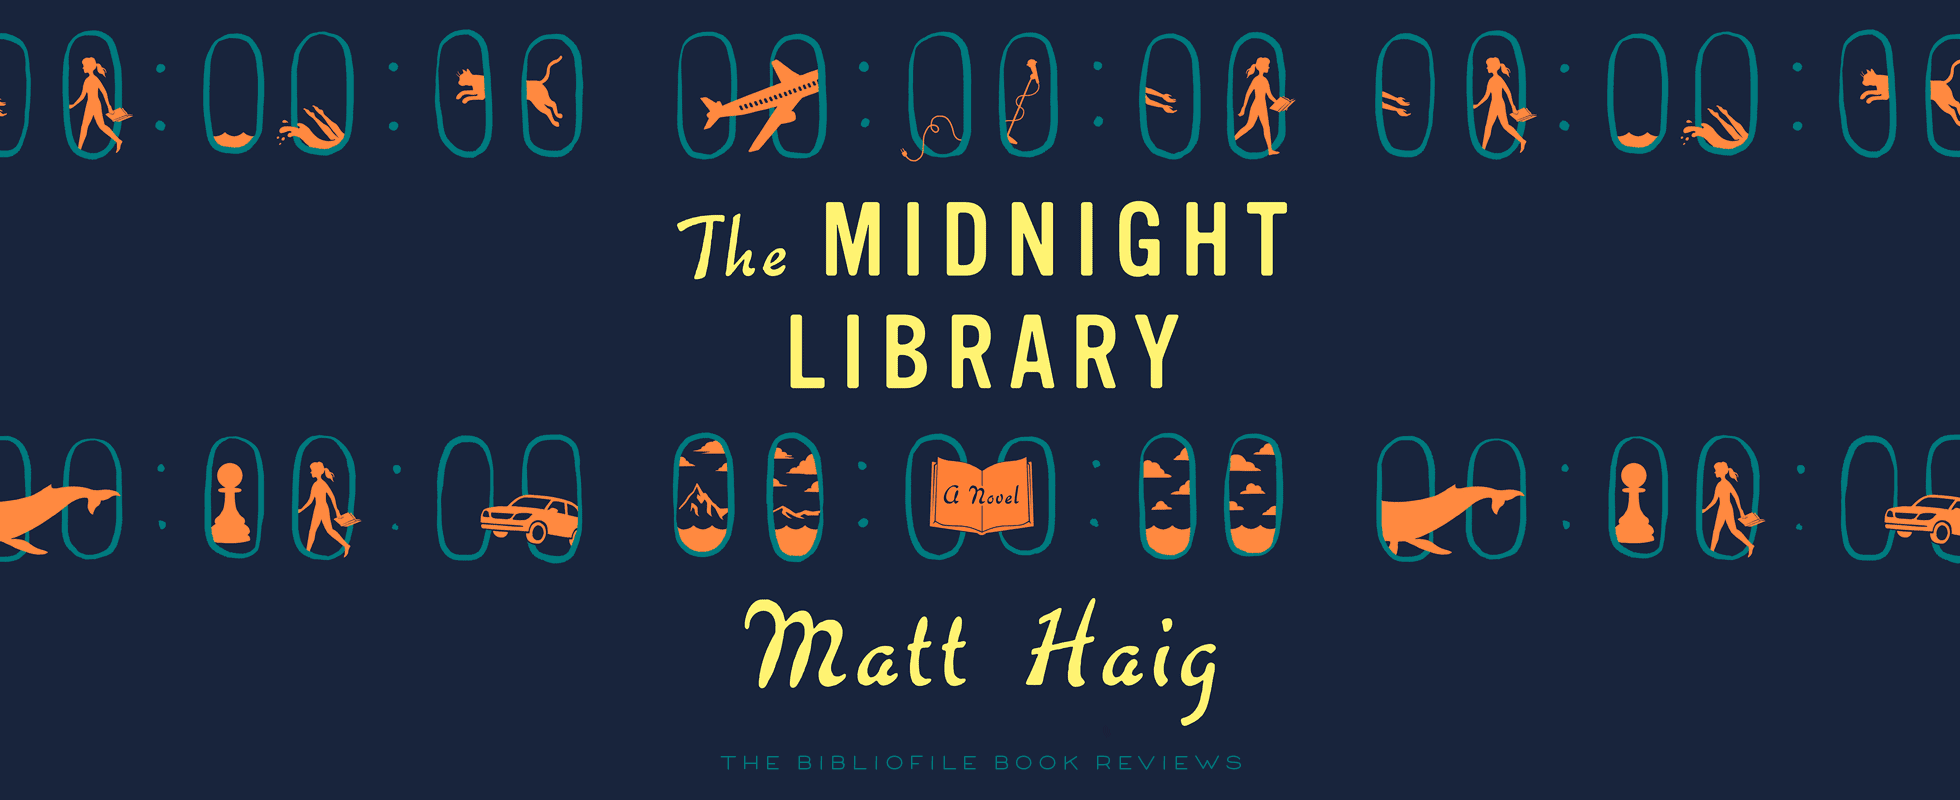 the midnight library by matt haig review and summary